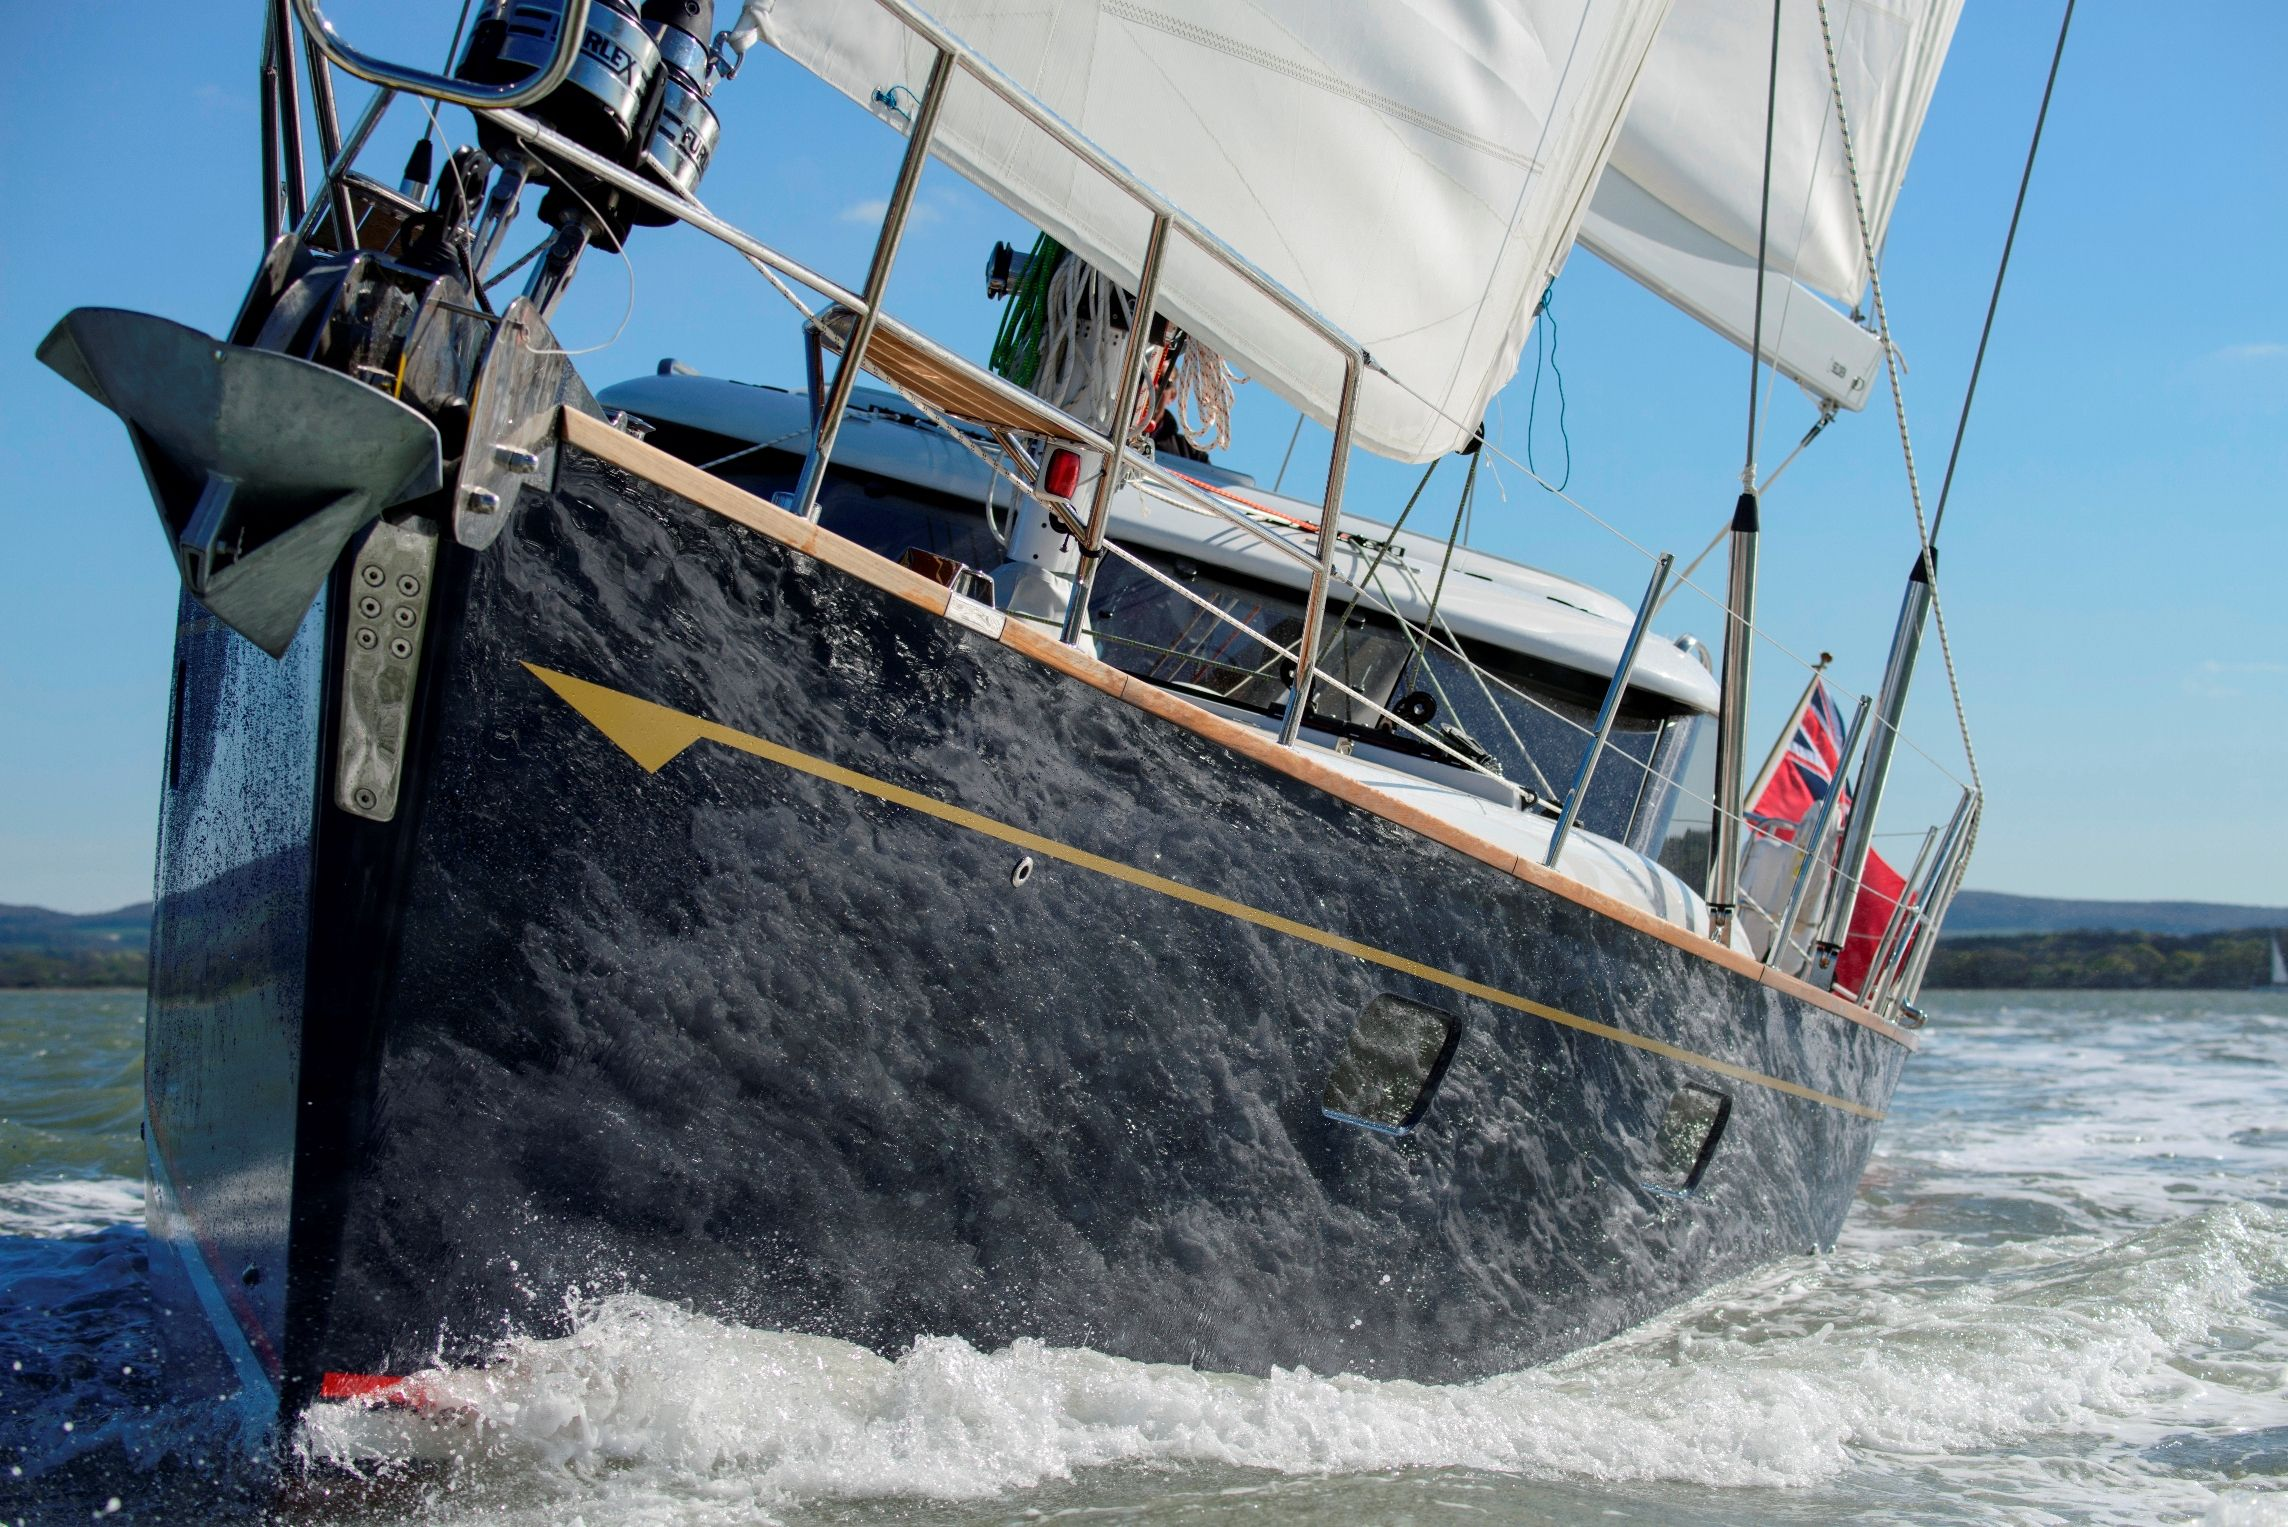 Discovery 58 discovery yachts yacht sailing discovery